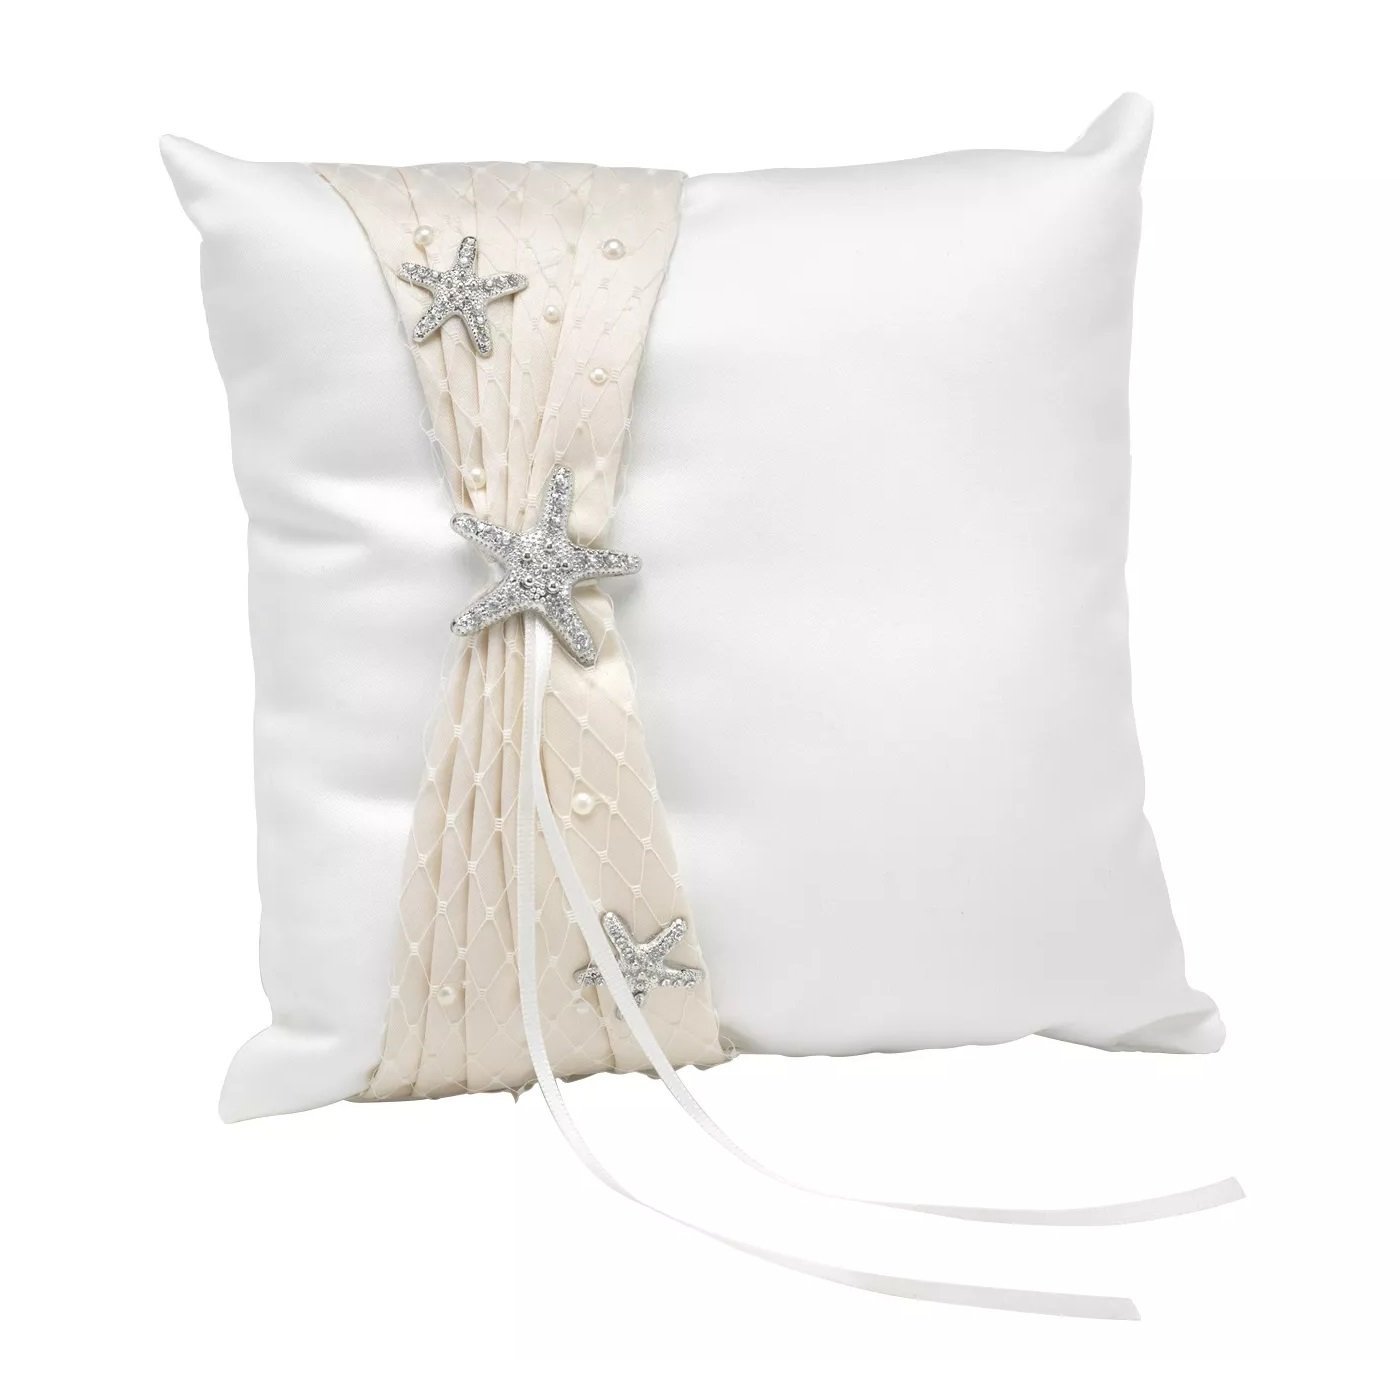 Destination-Romance-Wedding-Collection-Ring-Bearer-Pillow 100+ Beach Wedding Decorations and Ideas